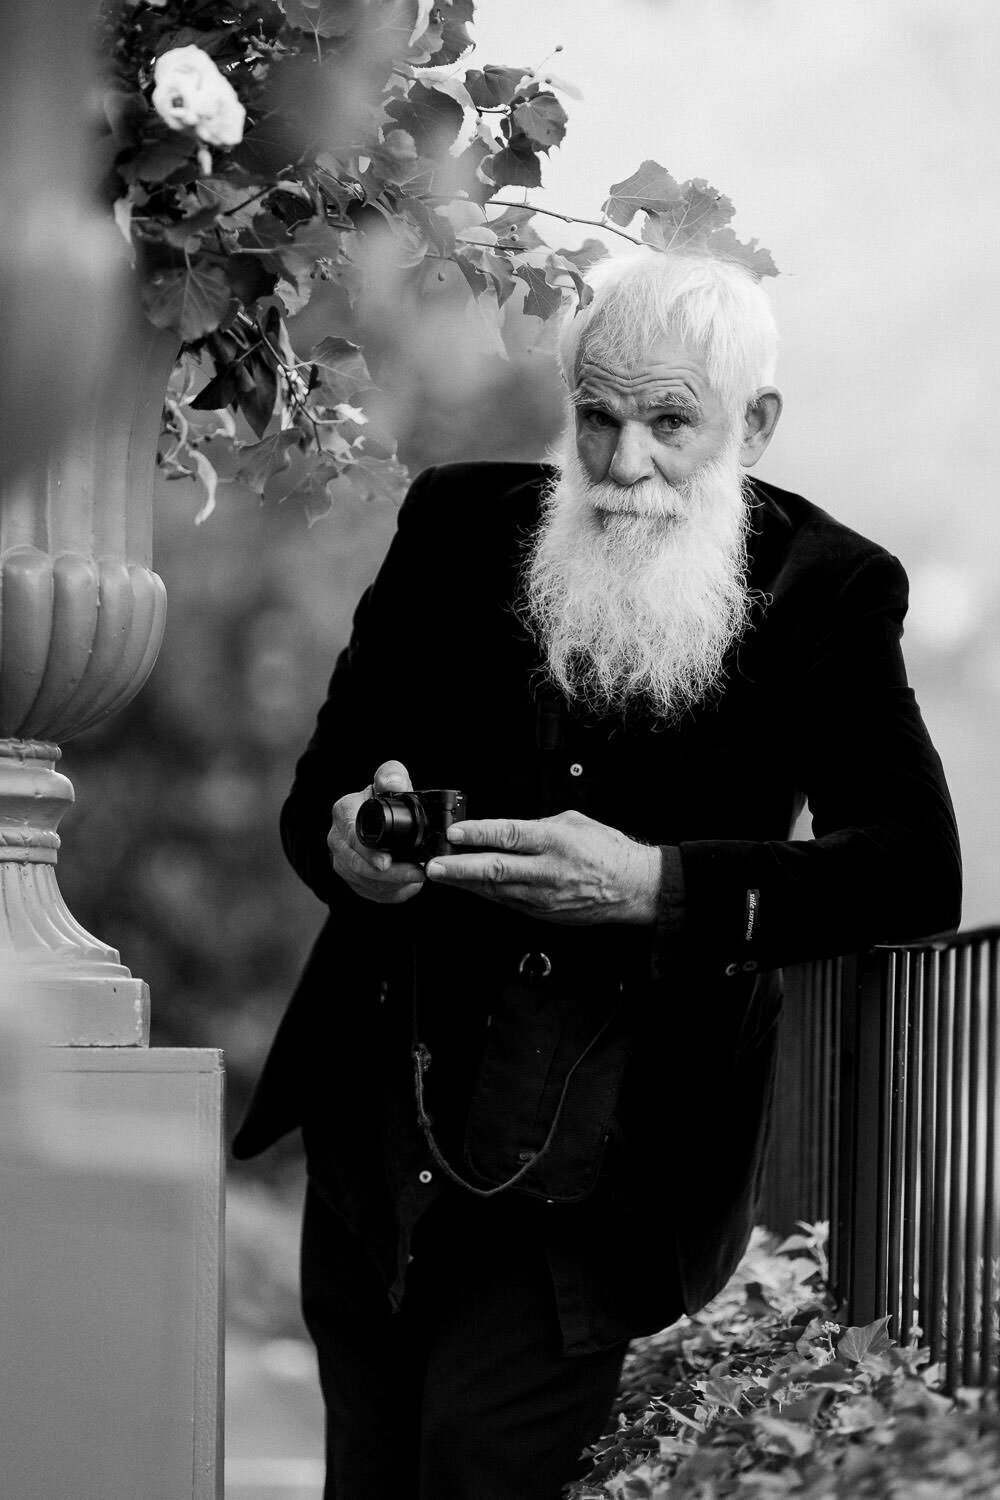 white bearded old man holding camera leaning against fence in black suit